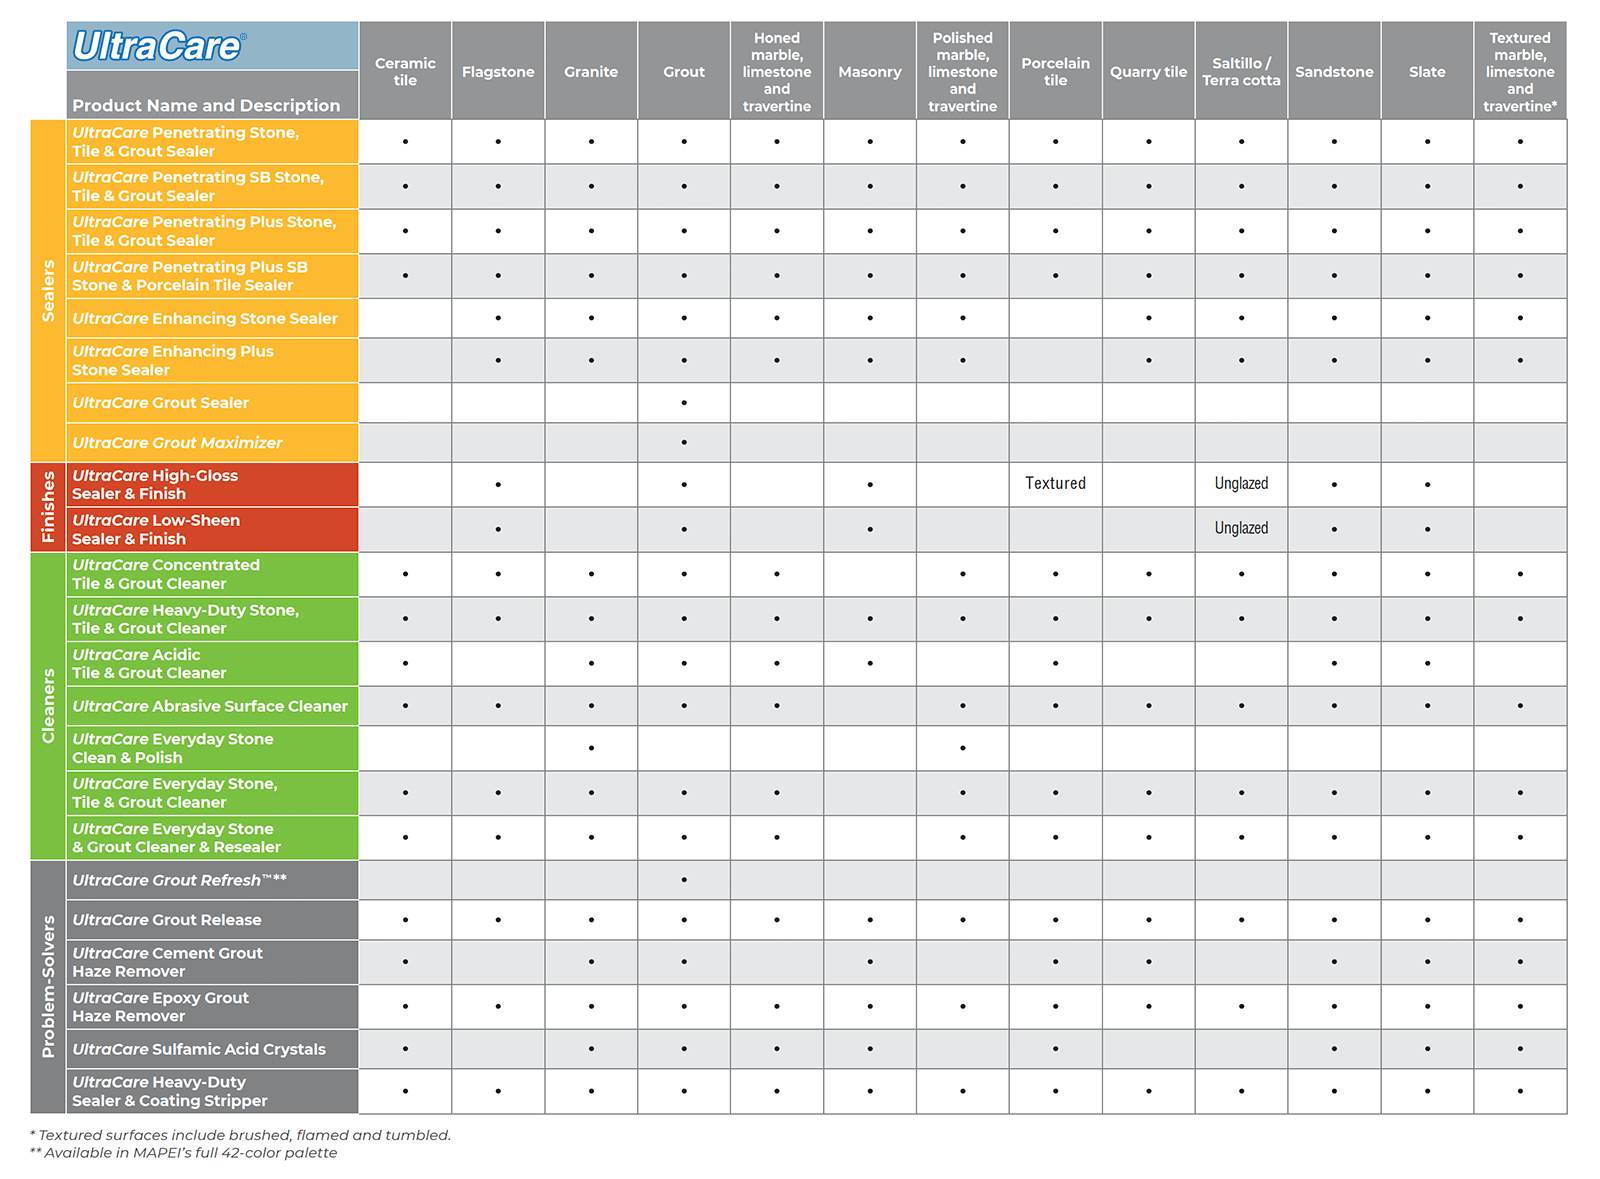 ultracare-product-selection-chart